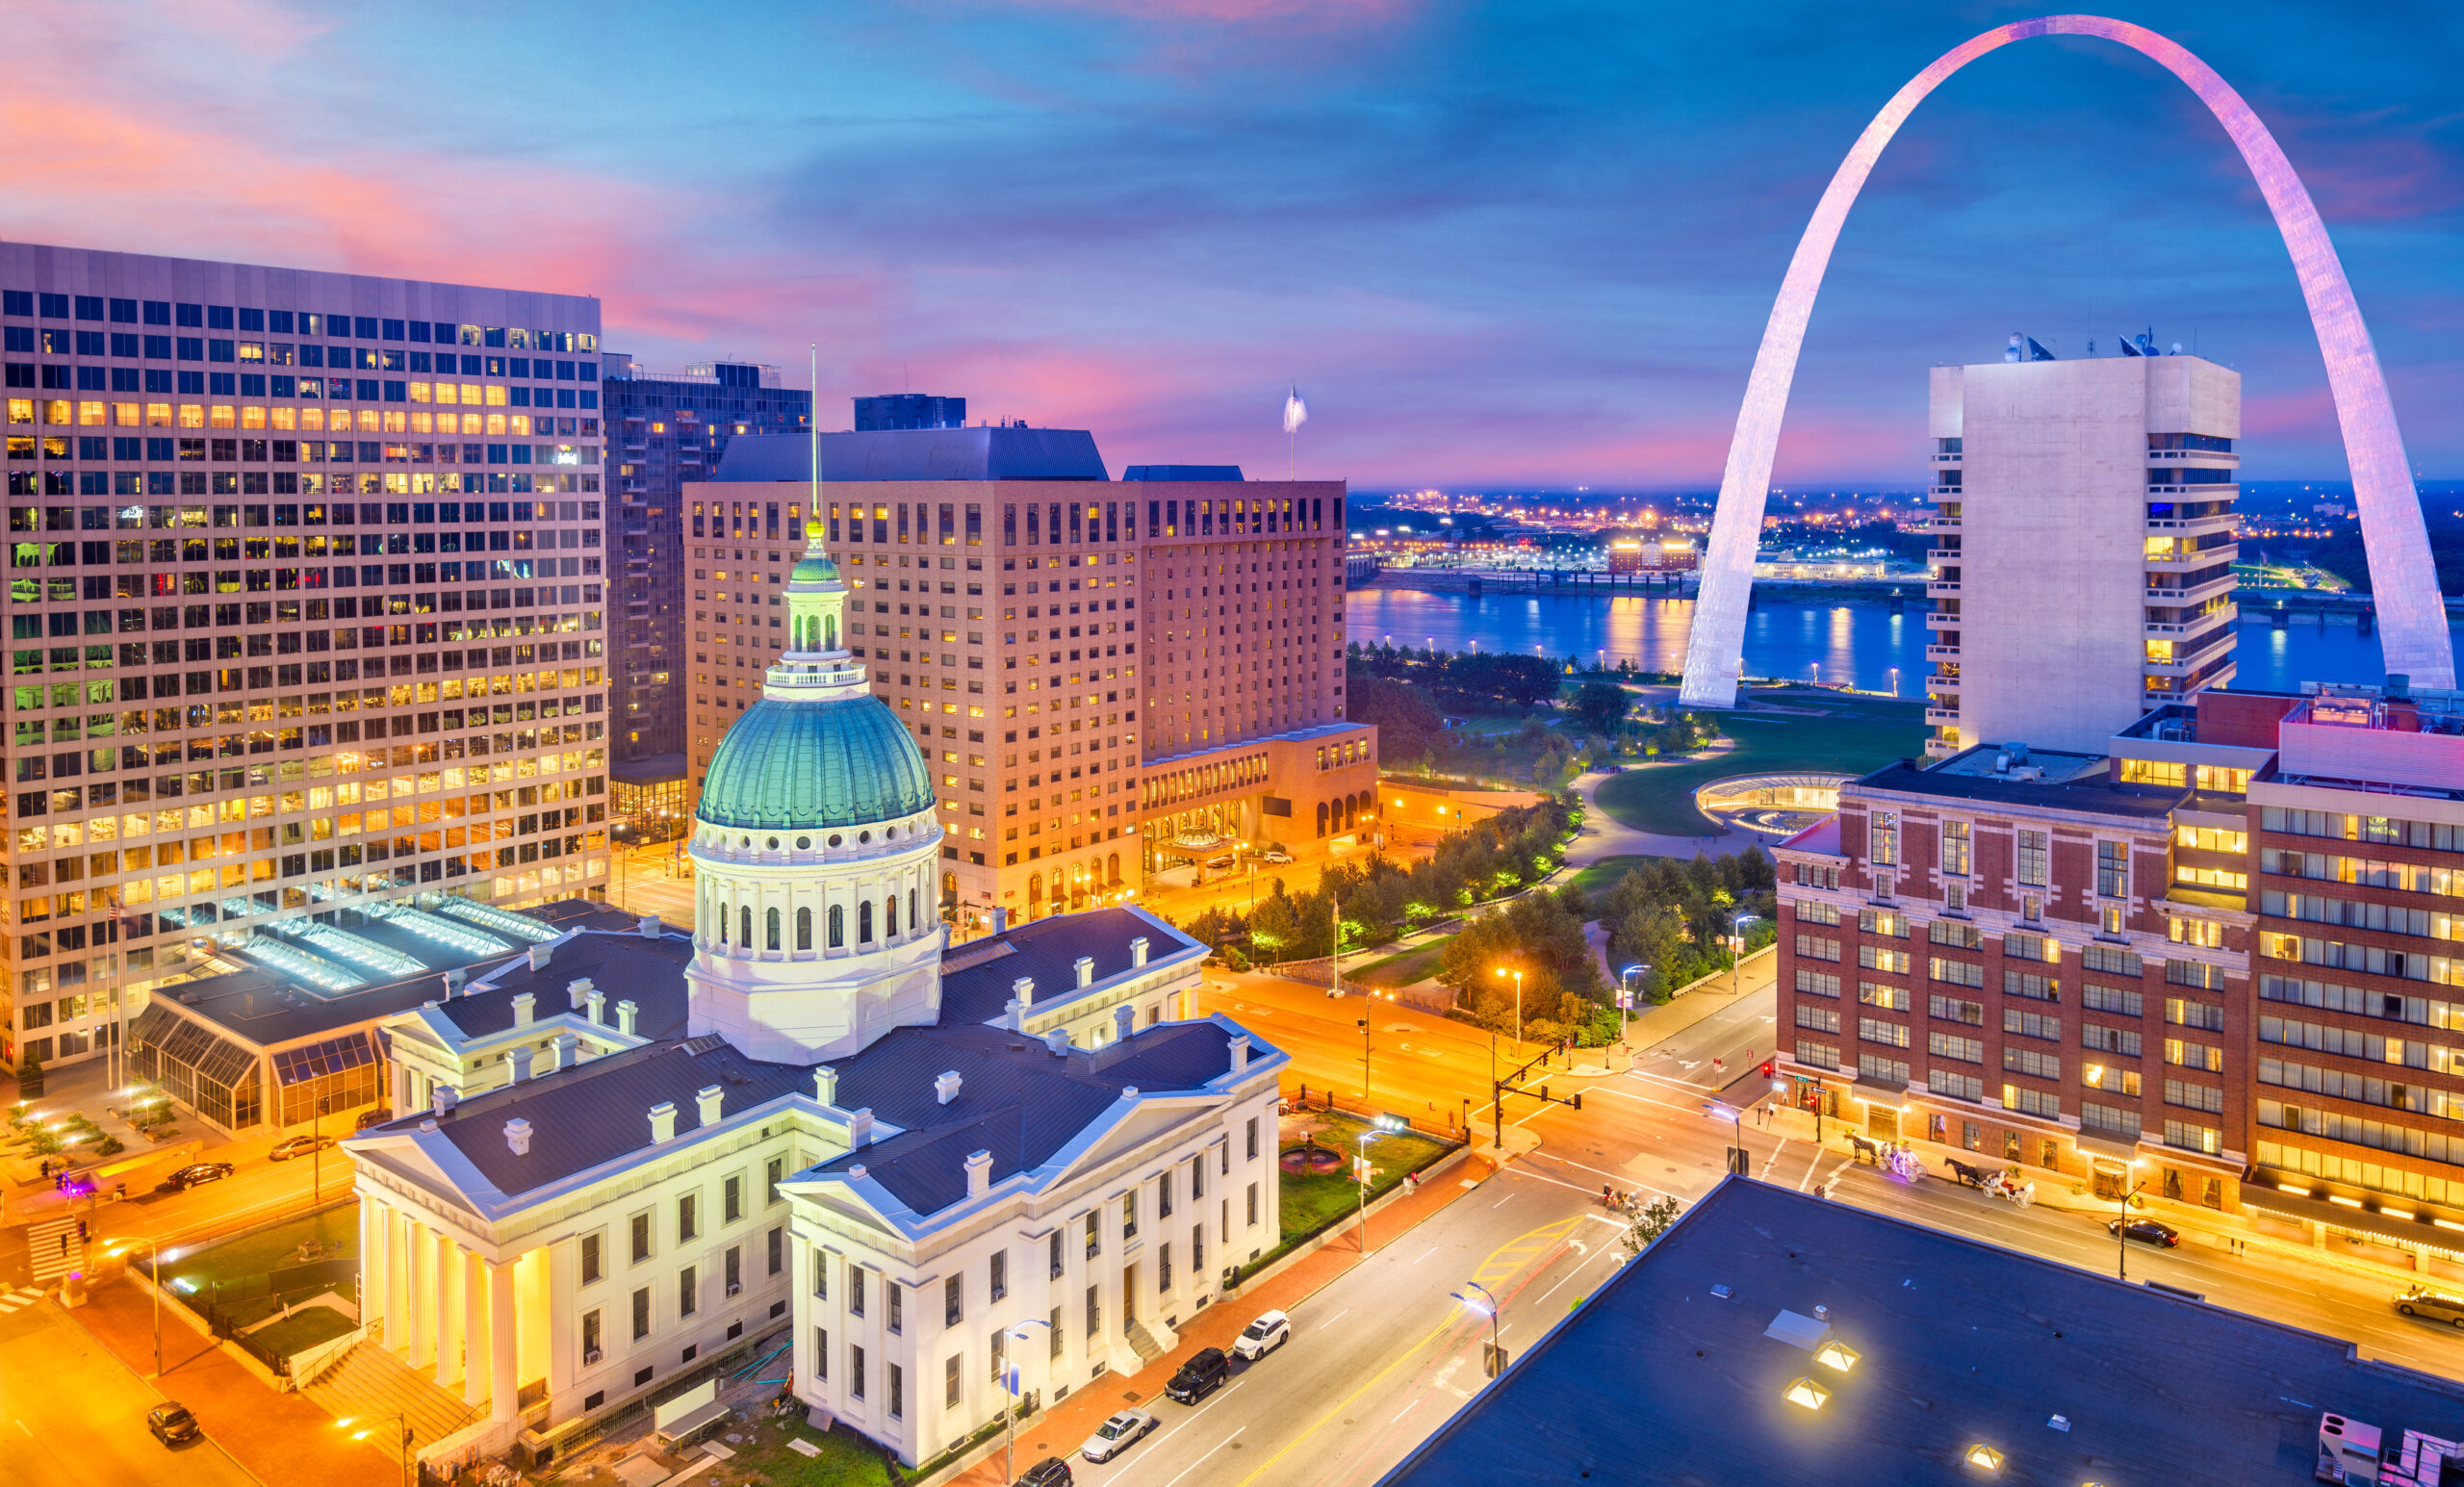 St. Louis, Missouri, USA downtown cityscape with the arch and courthouse at dusk.